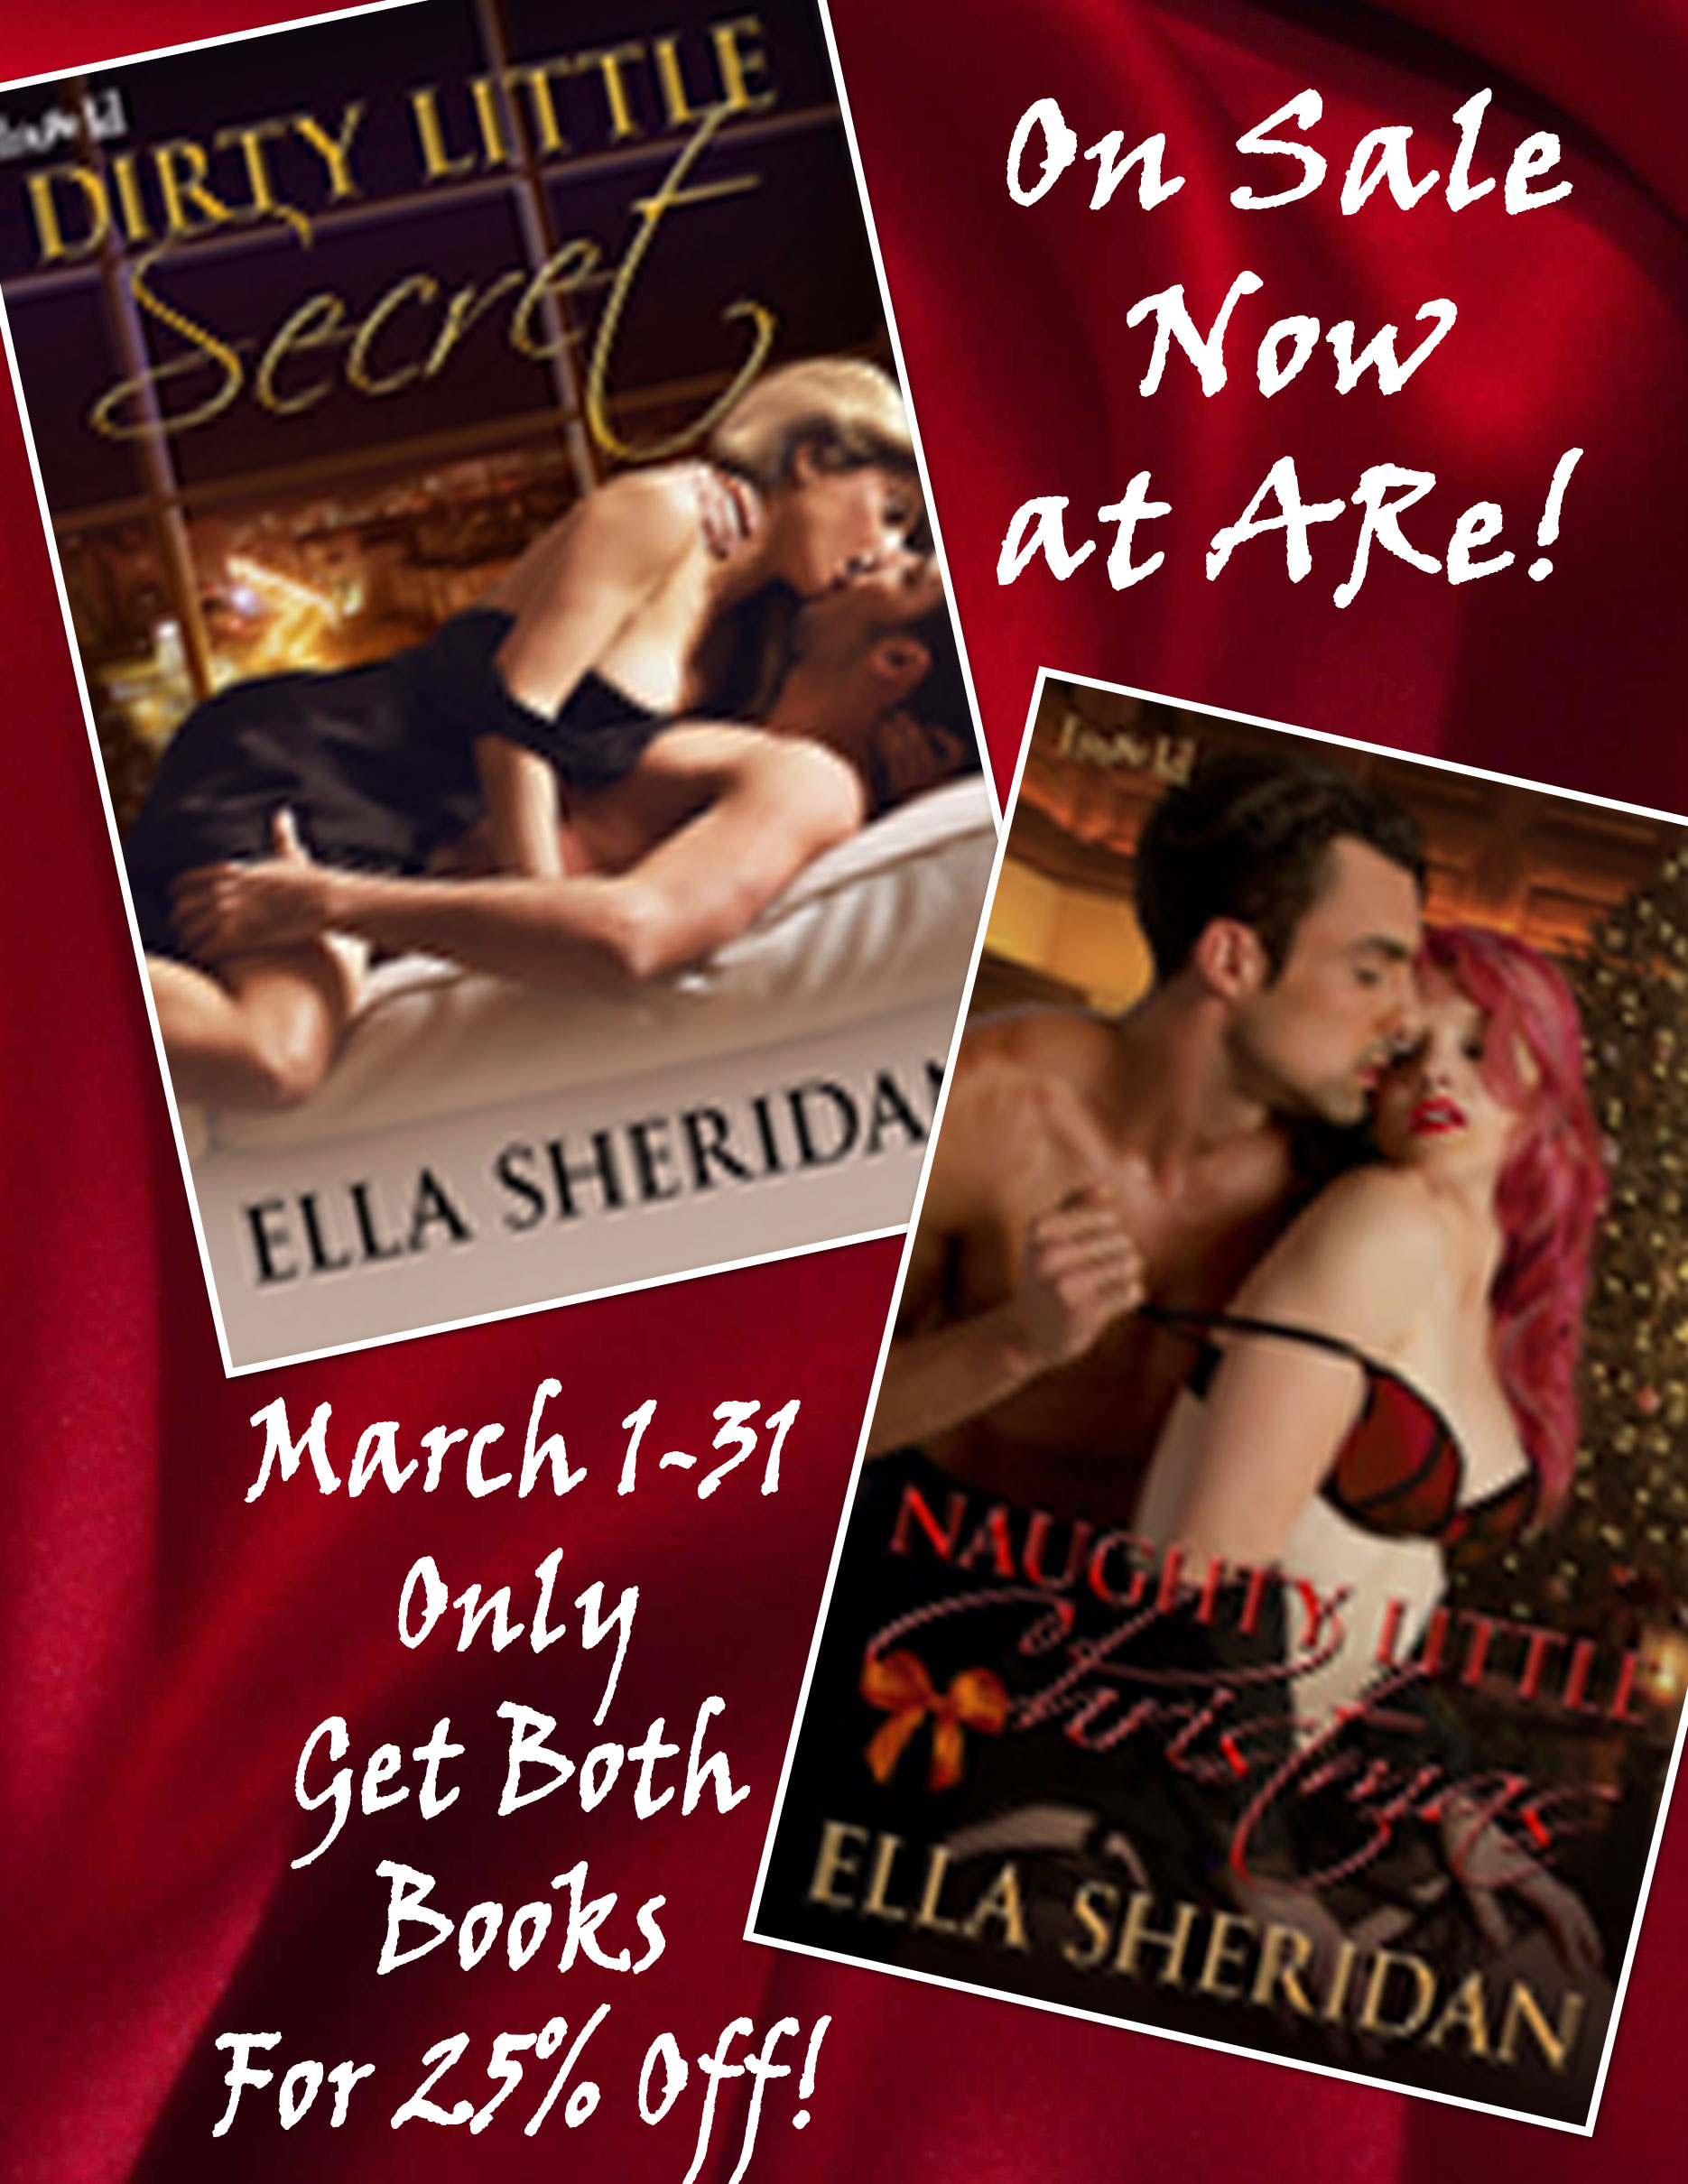 ella sheridan, romance, author, erotic romance, paranormal romance, naughty little christmas, dirty little secret, sale, book, ebook, ARe, All Romance Ebooks, Loose Id